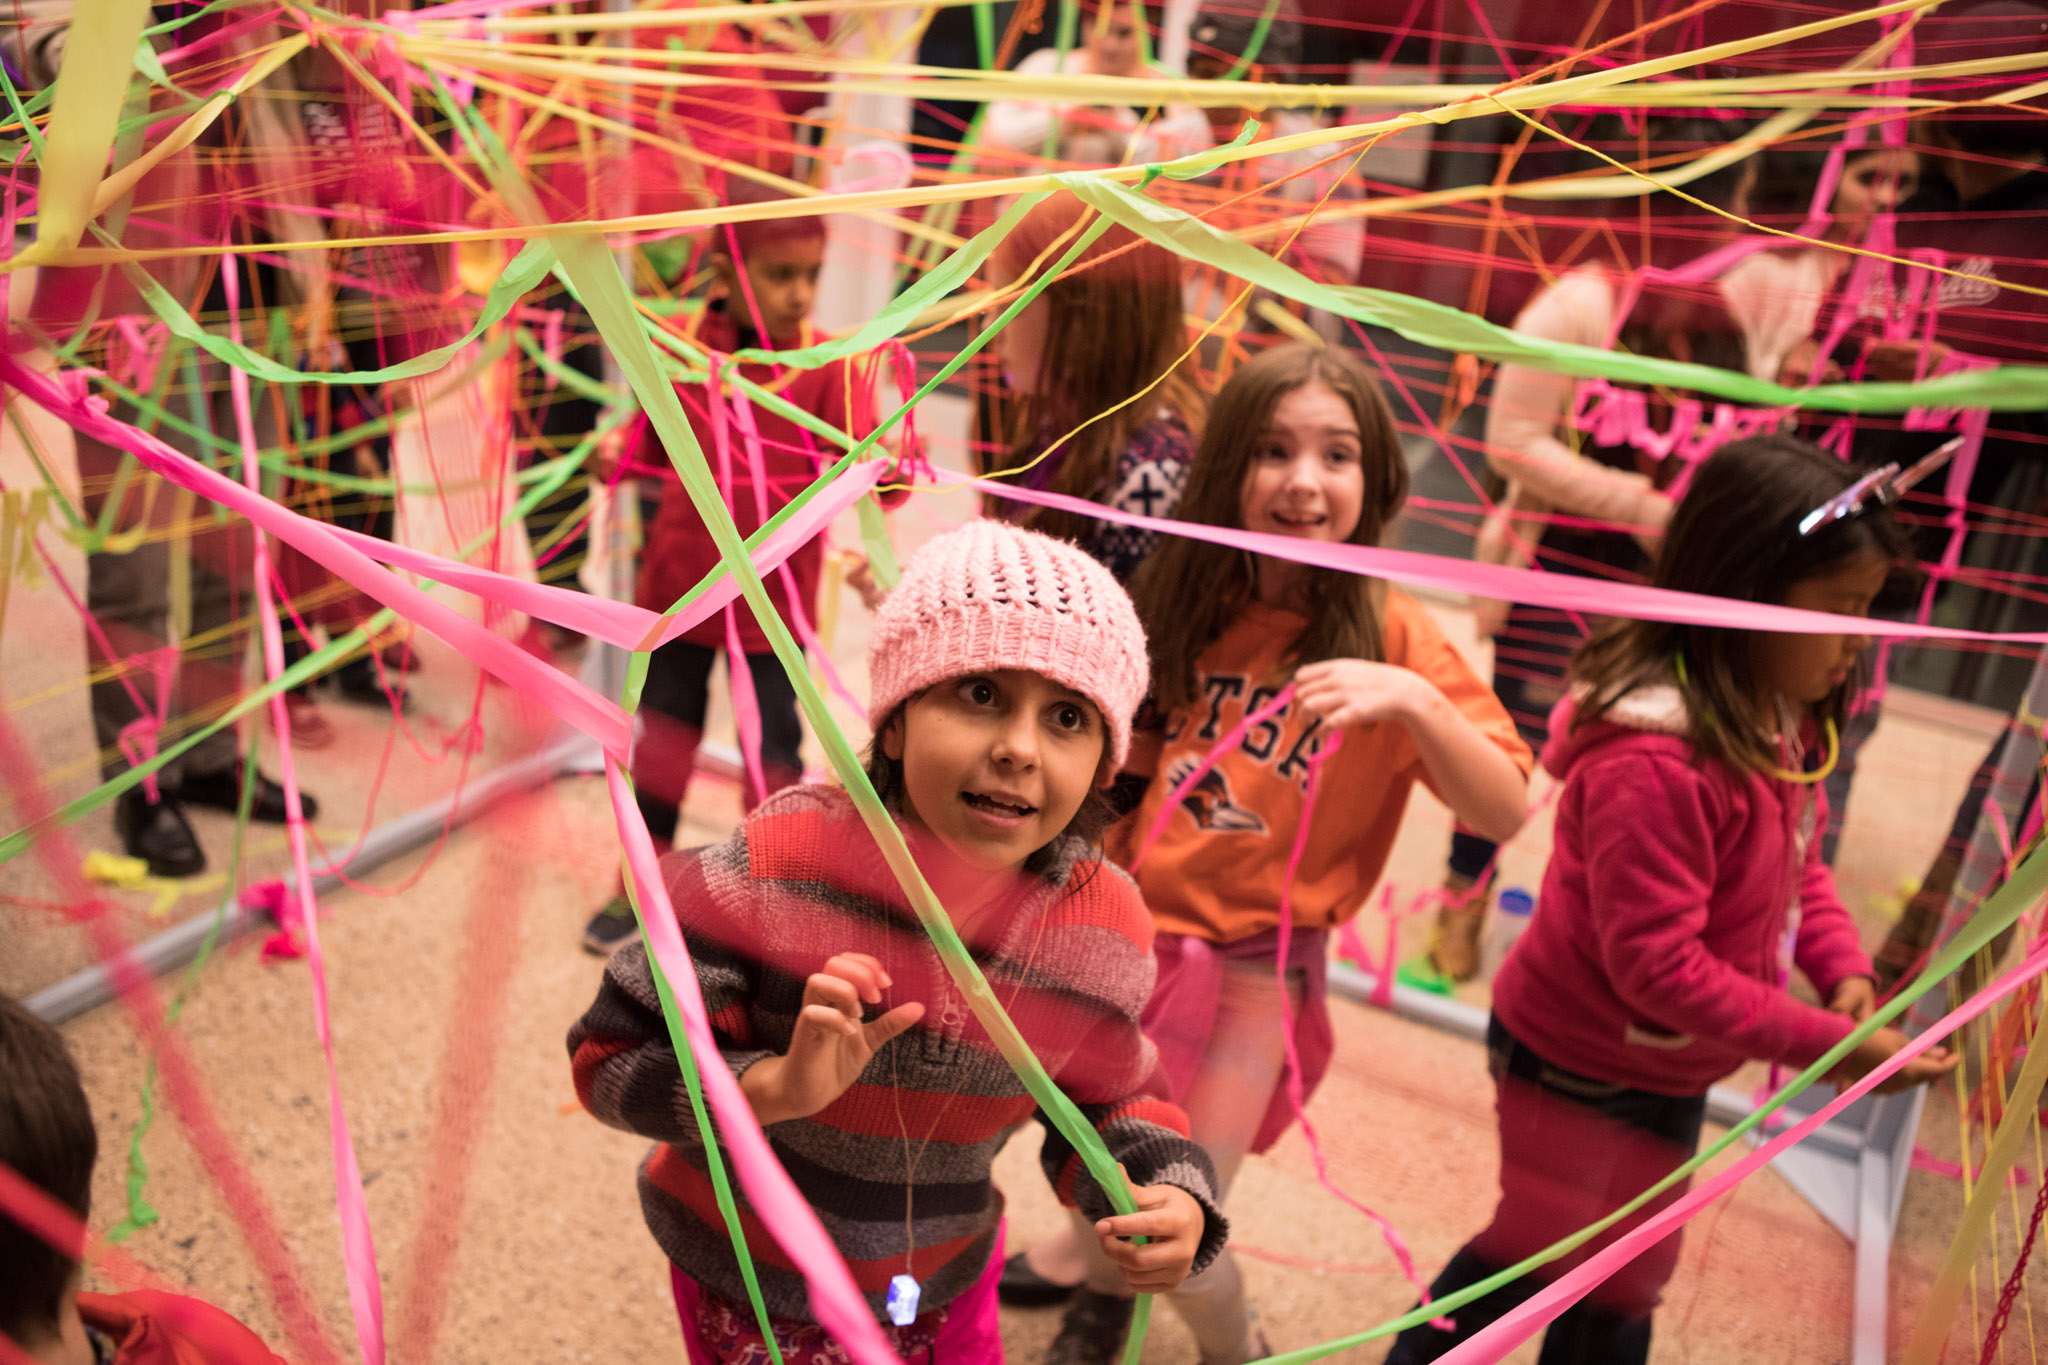 """Christine Gonzales, 9, concentrates on tying colored strings in the art piece """"Cube Loom"""" by Katie Pell at Luminaria."""